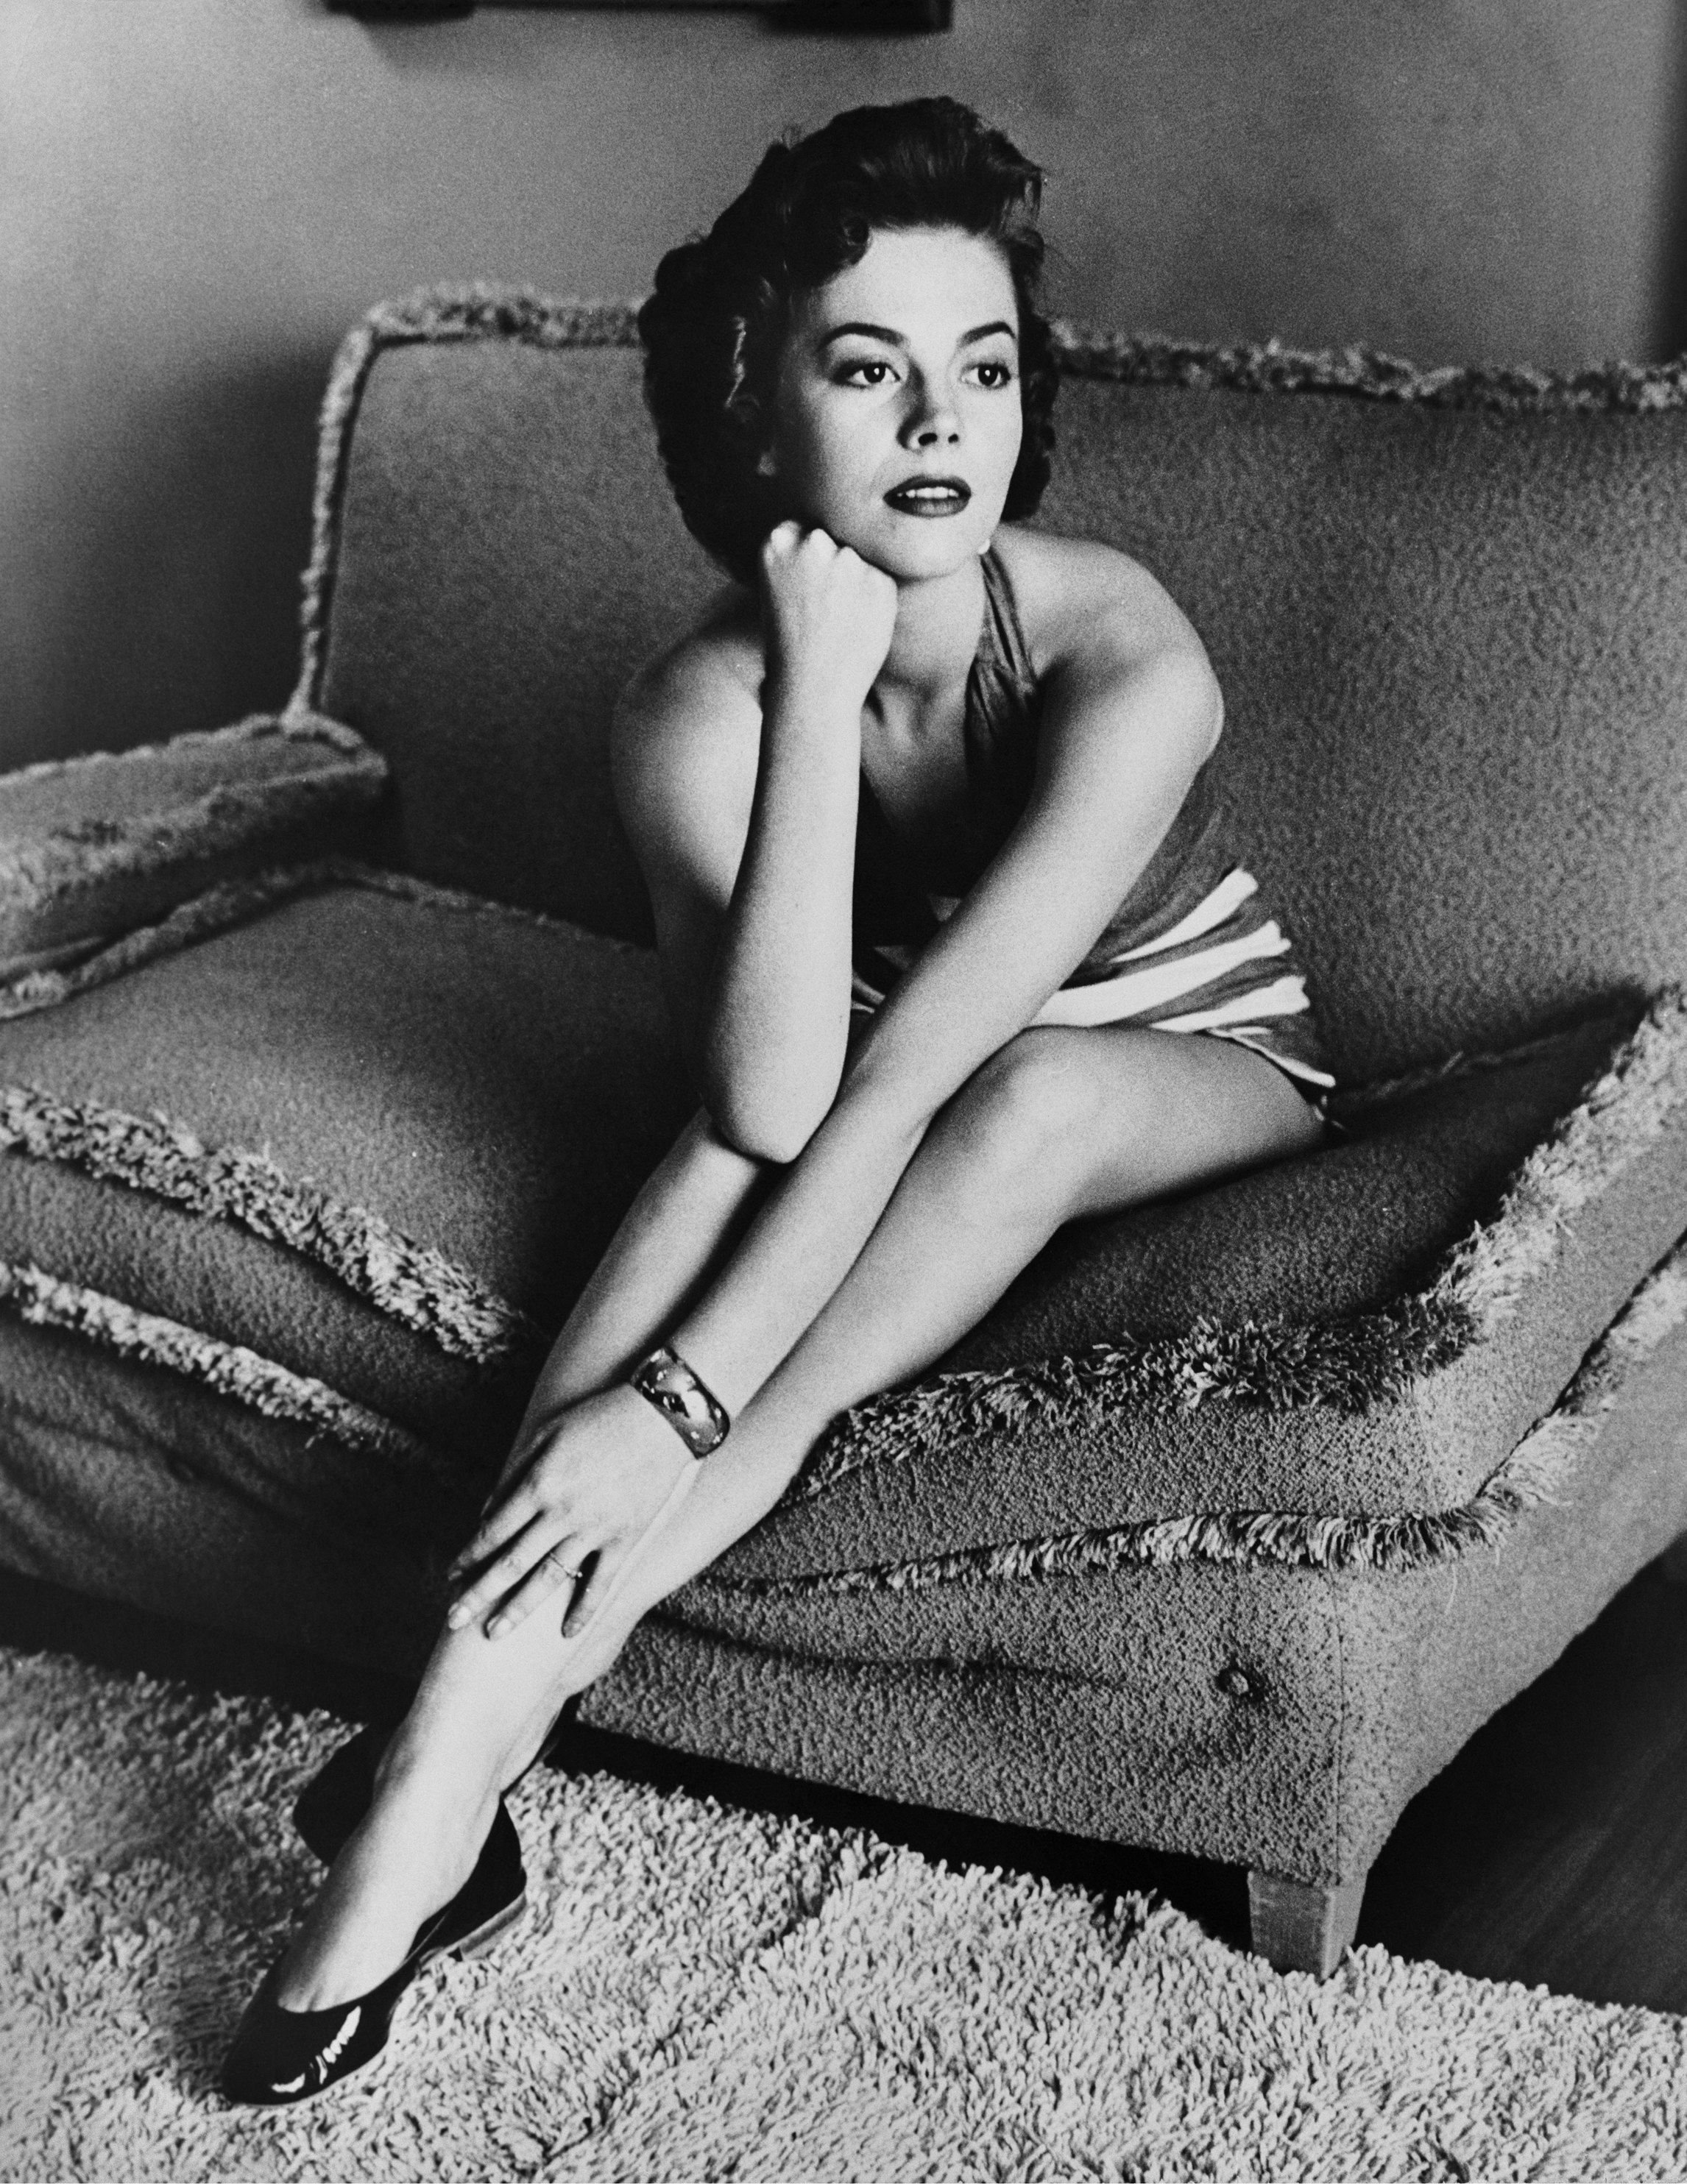 Natalie Wood poses for a portrait session in 1952 in Los Angeles, California   Source: Getty Images